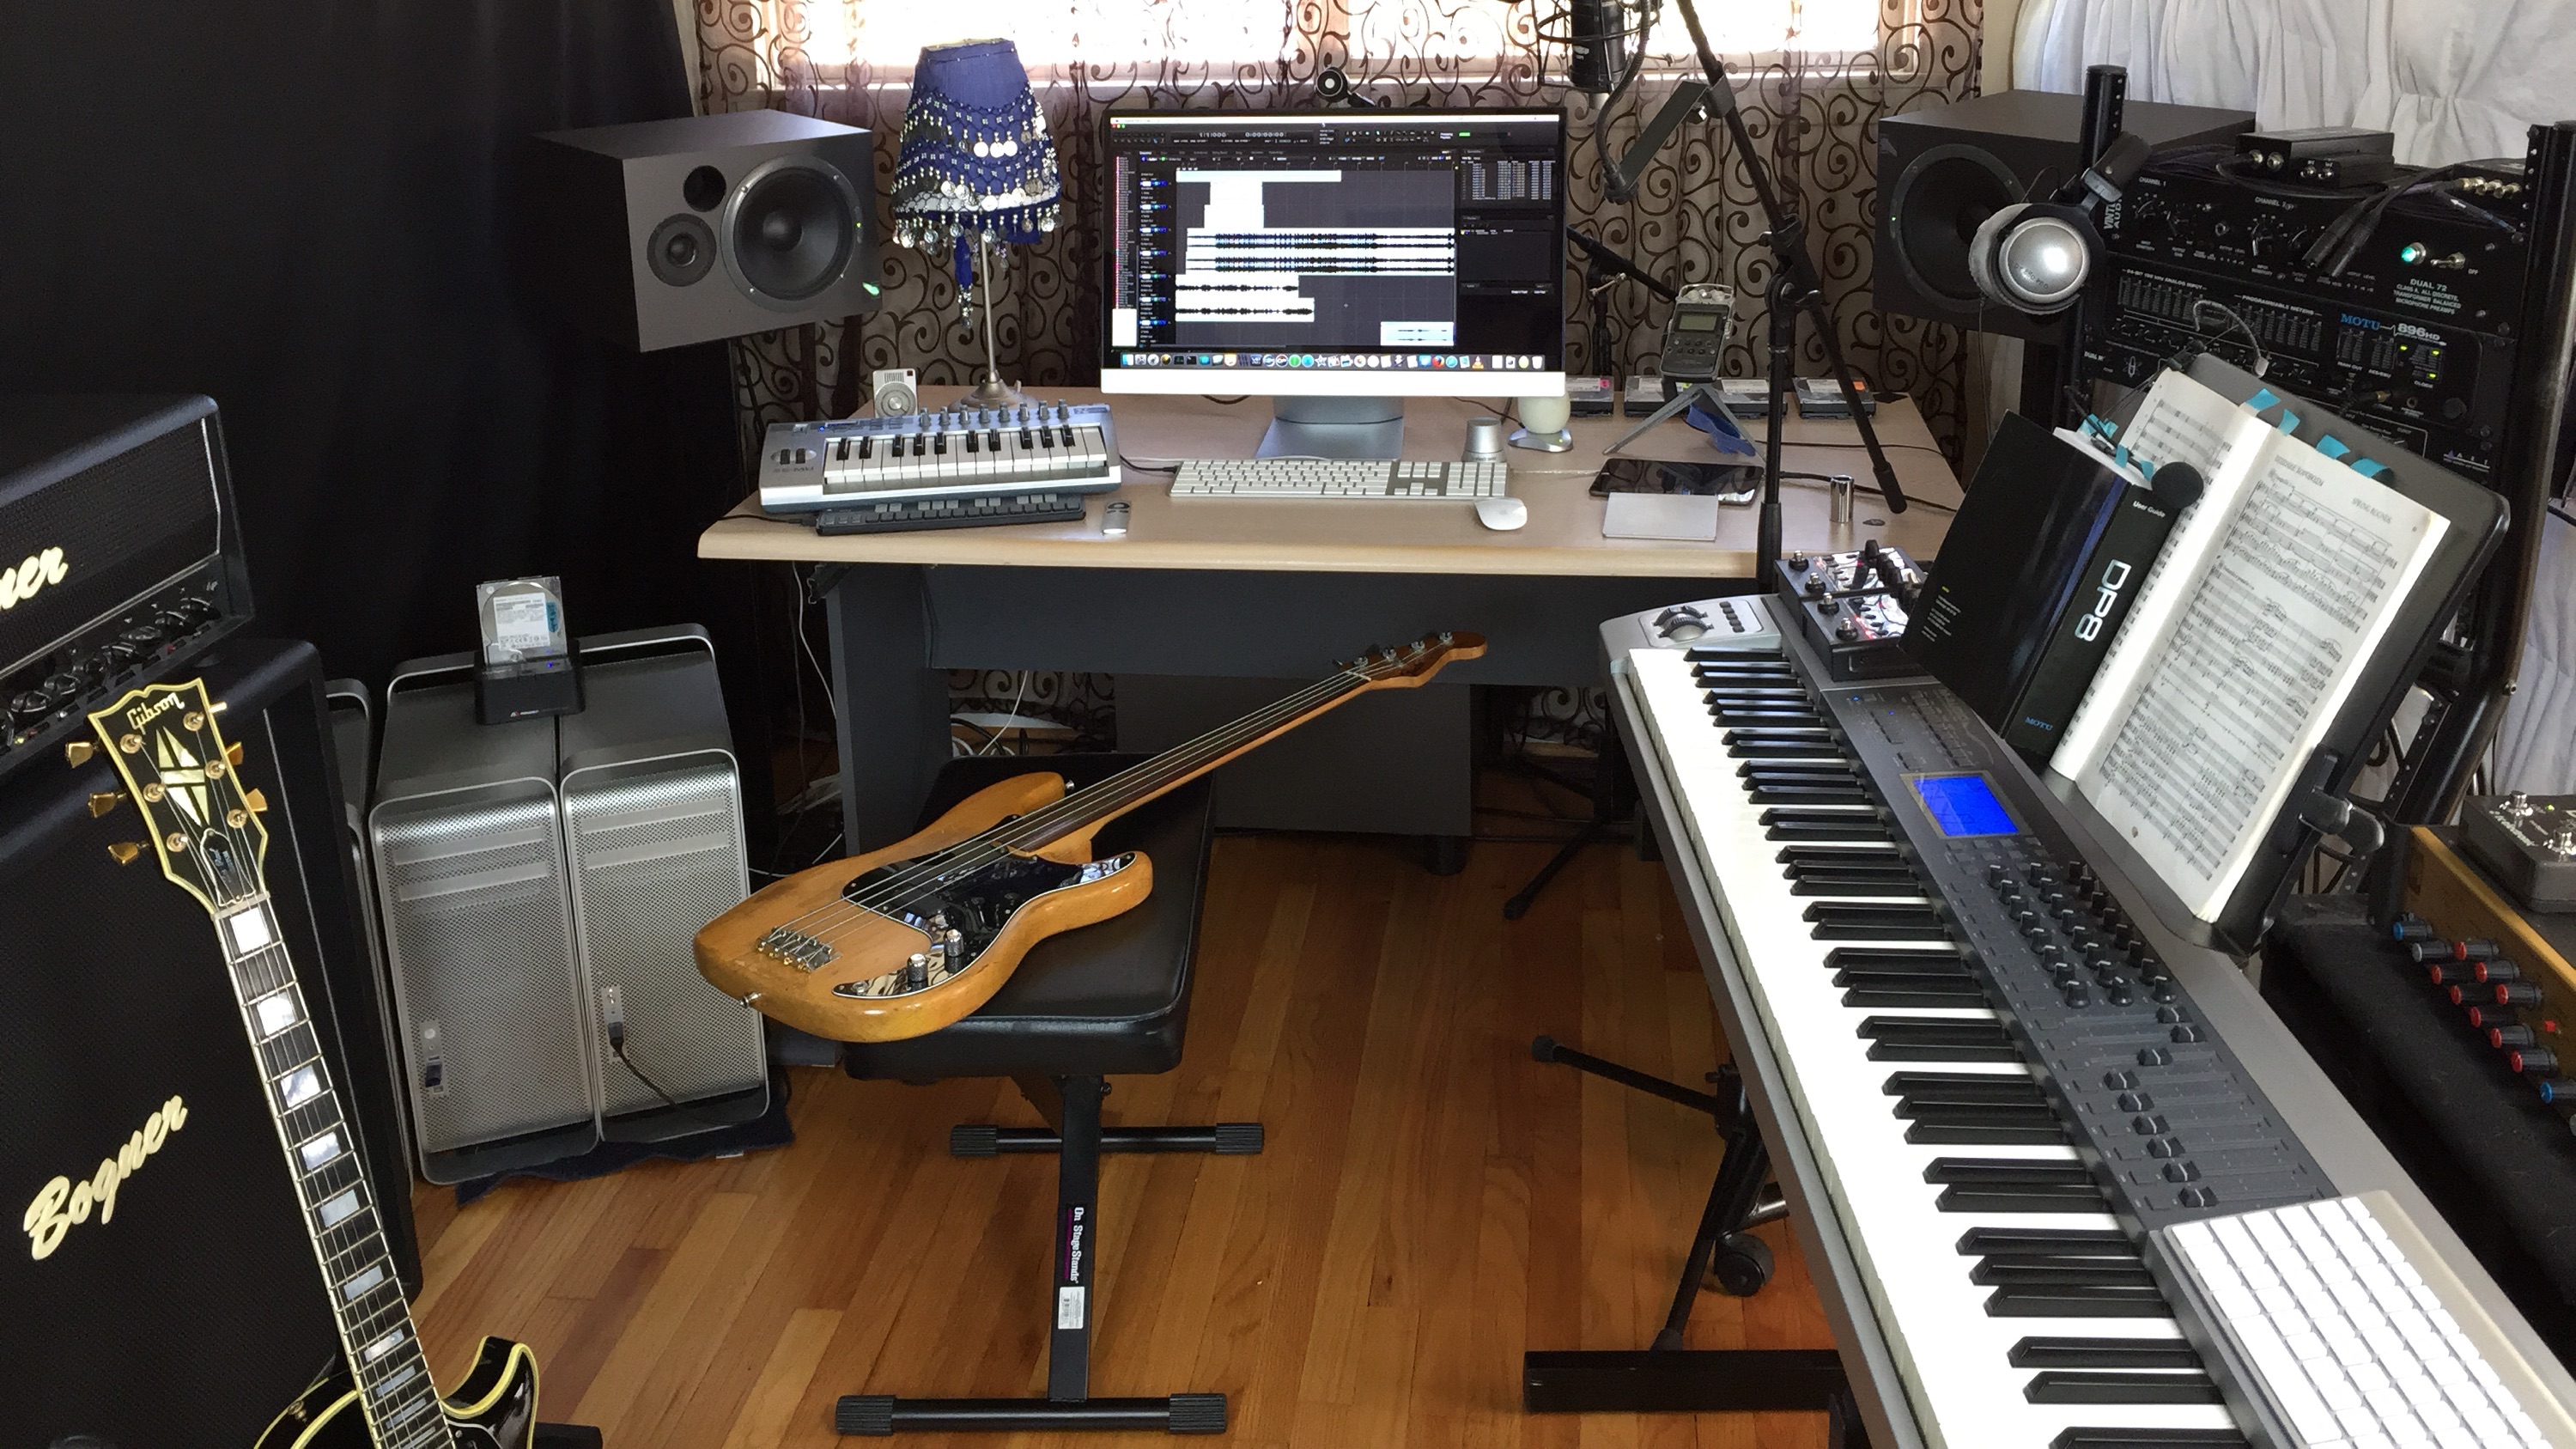 How To Make A Recording Room